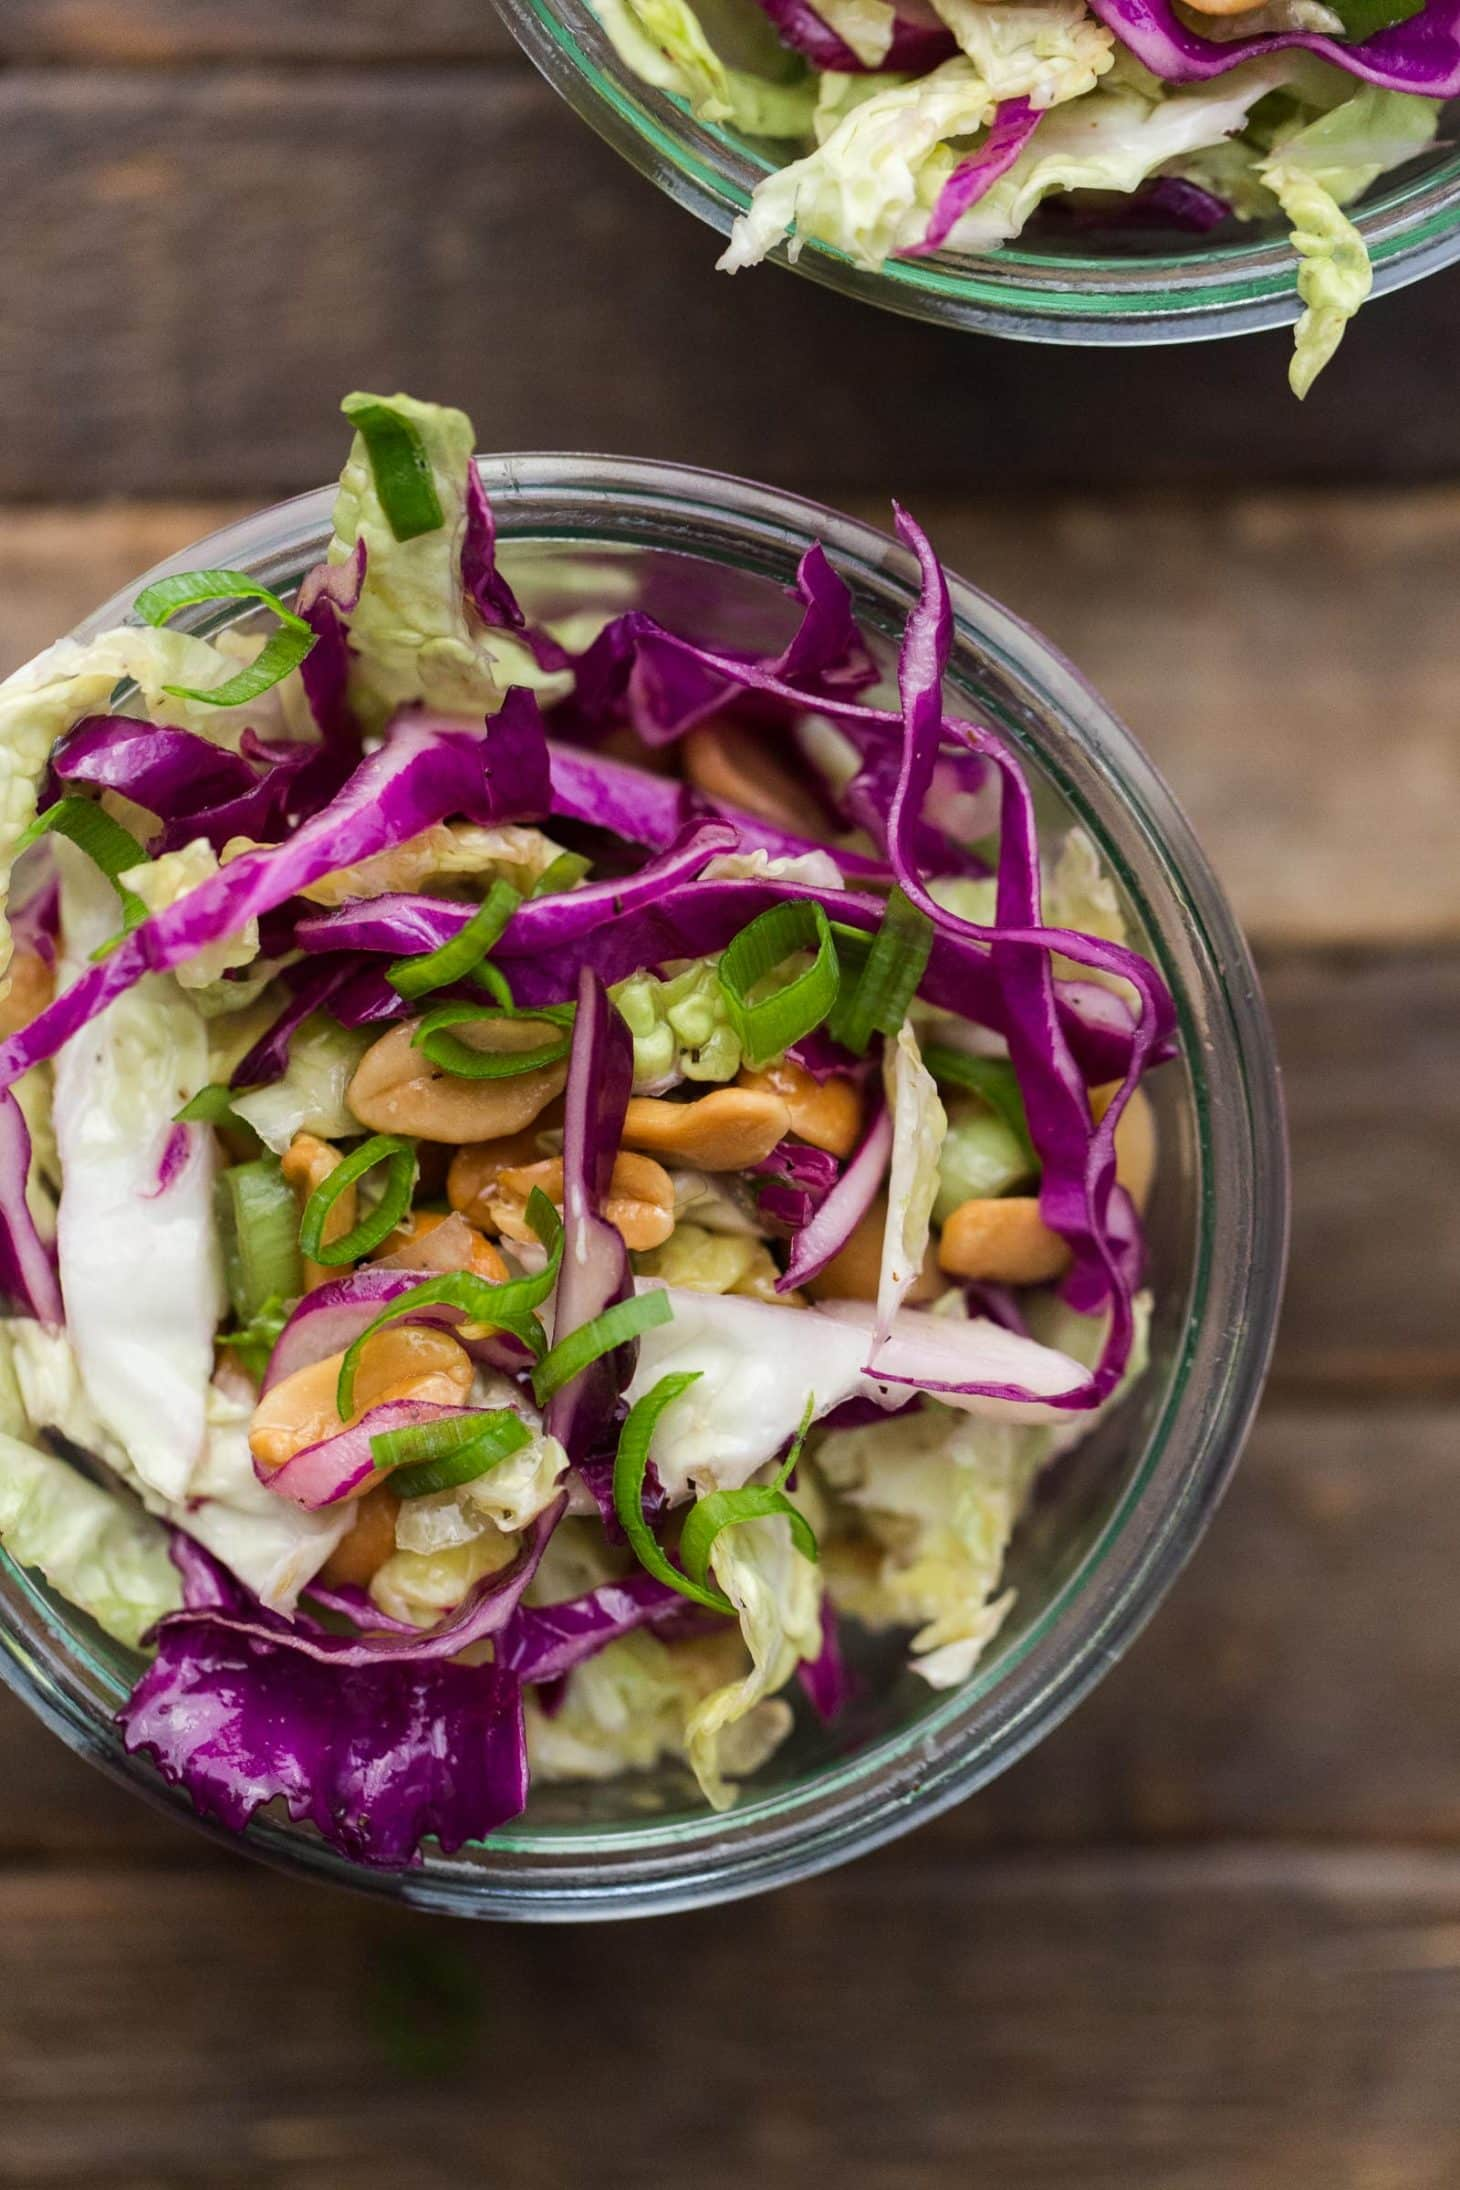 Cabbage Salad with Peanuts | Vegetarian Picnic Recipes